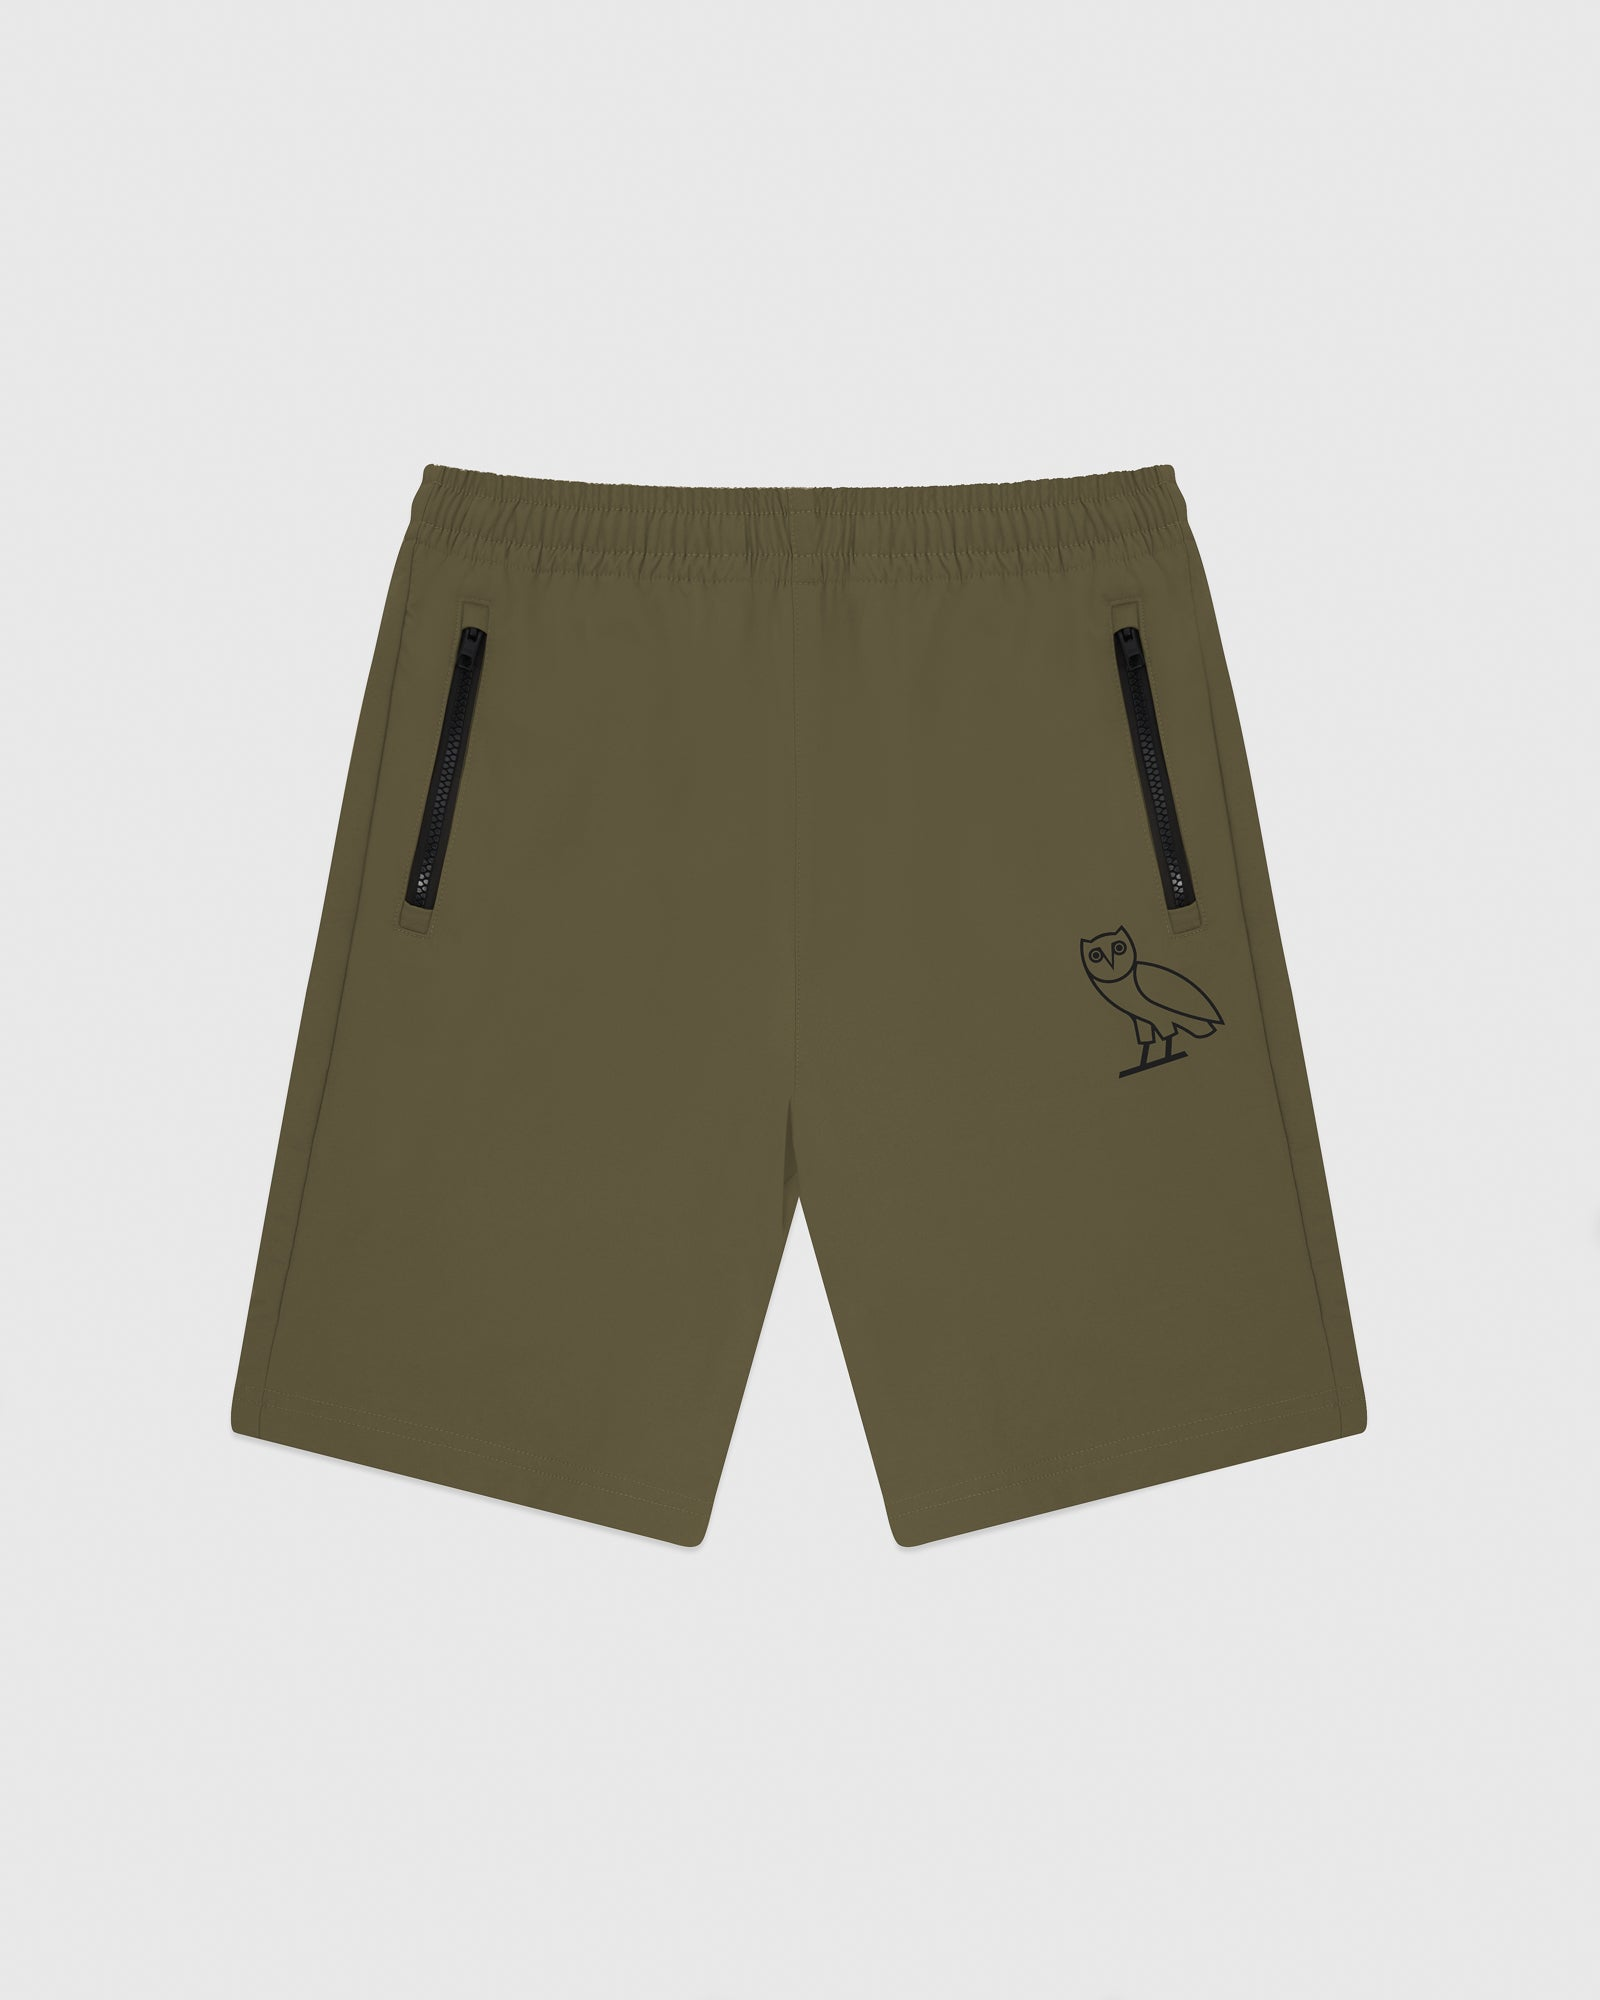 OVO 4-WAY STRETCH SHORT - LIGHT STONE GREEN IMAGE #1